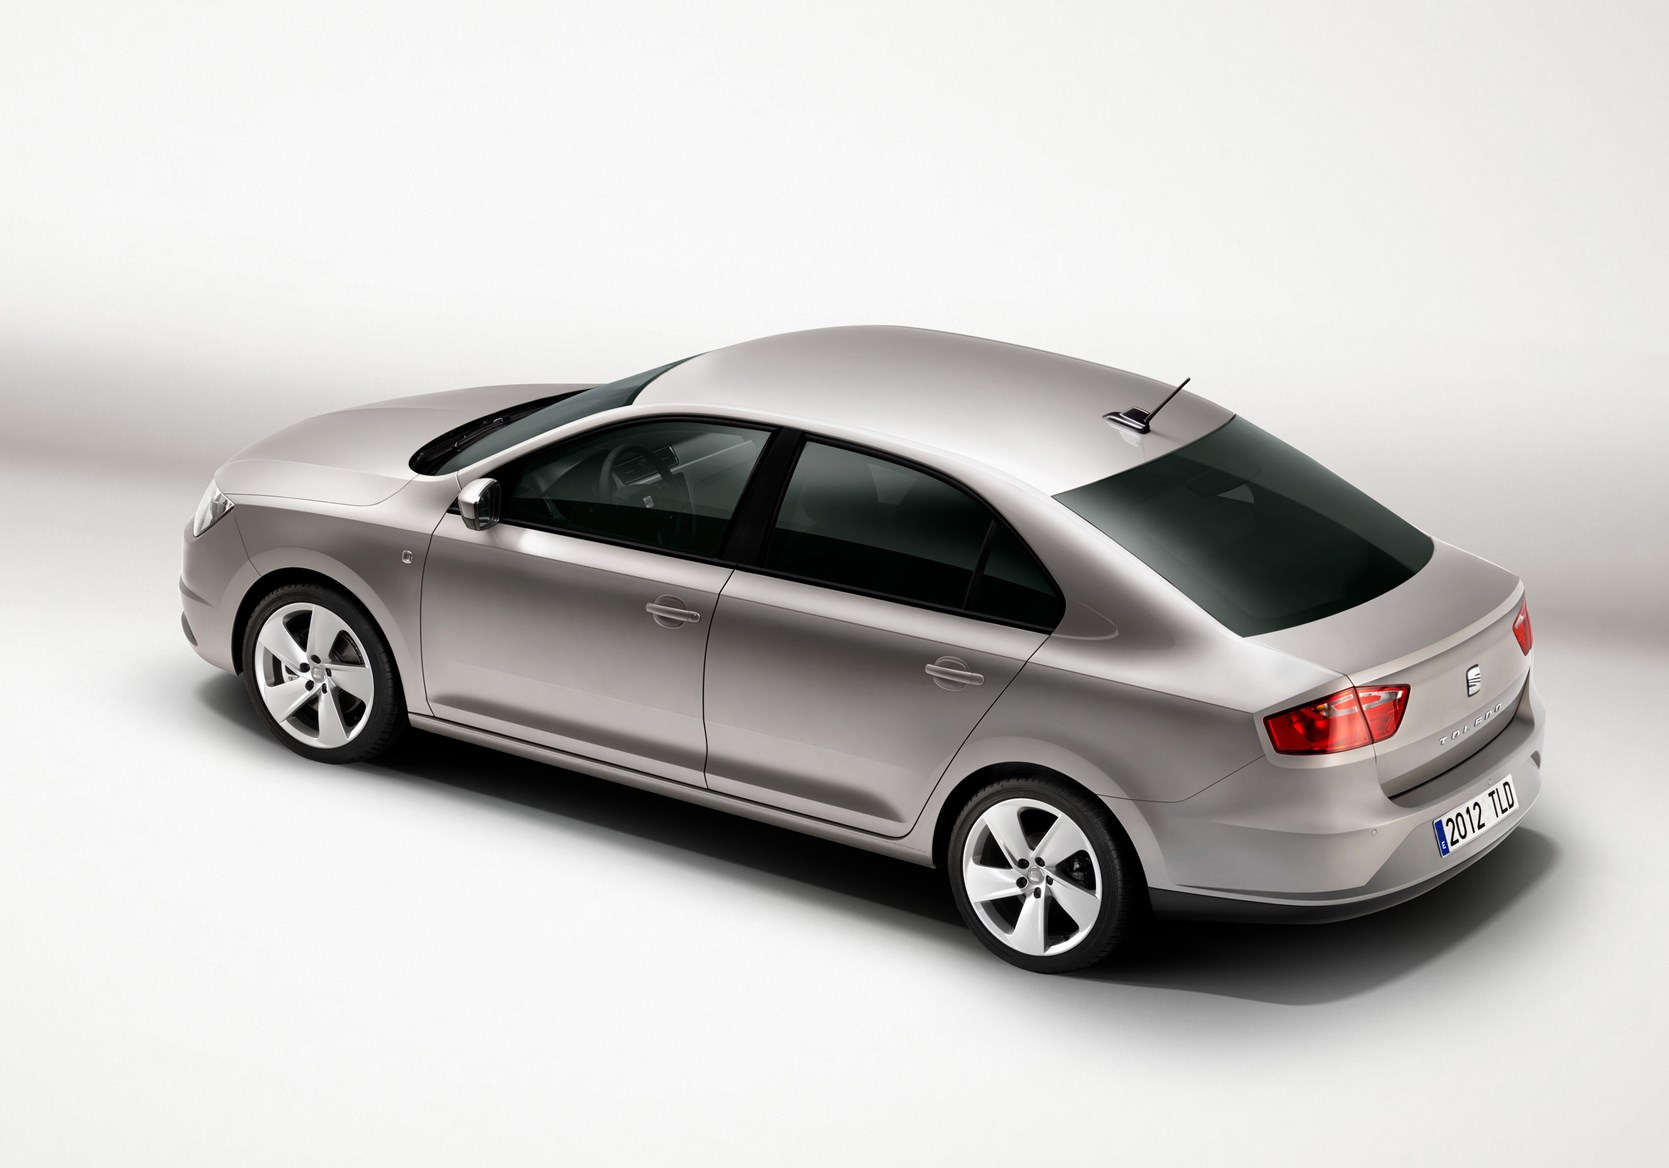 seat toledo information everything you need to know if you own it are thinking of ing one or just want to find out more about the bud family car